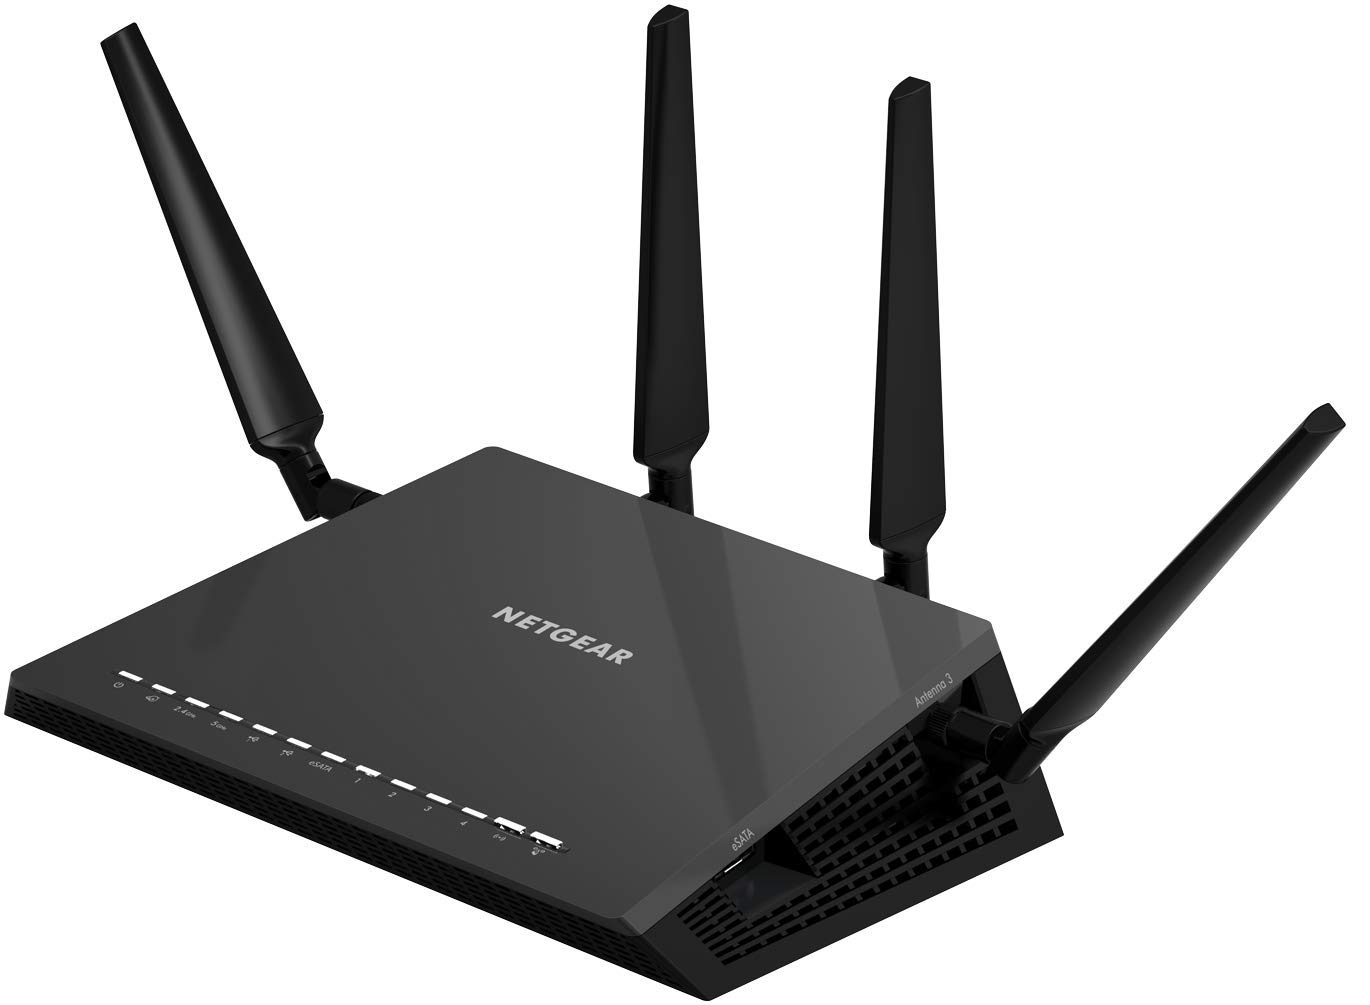 NETGEAR R7800 ROUTER WINDOWS 8.1 DRIVER